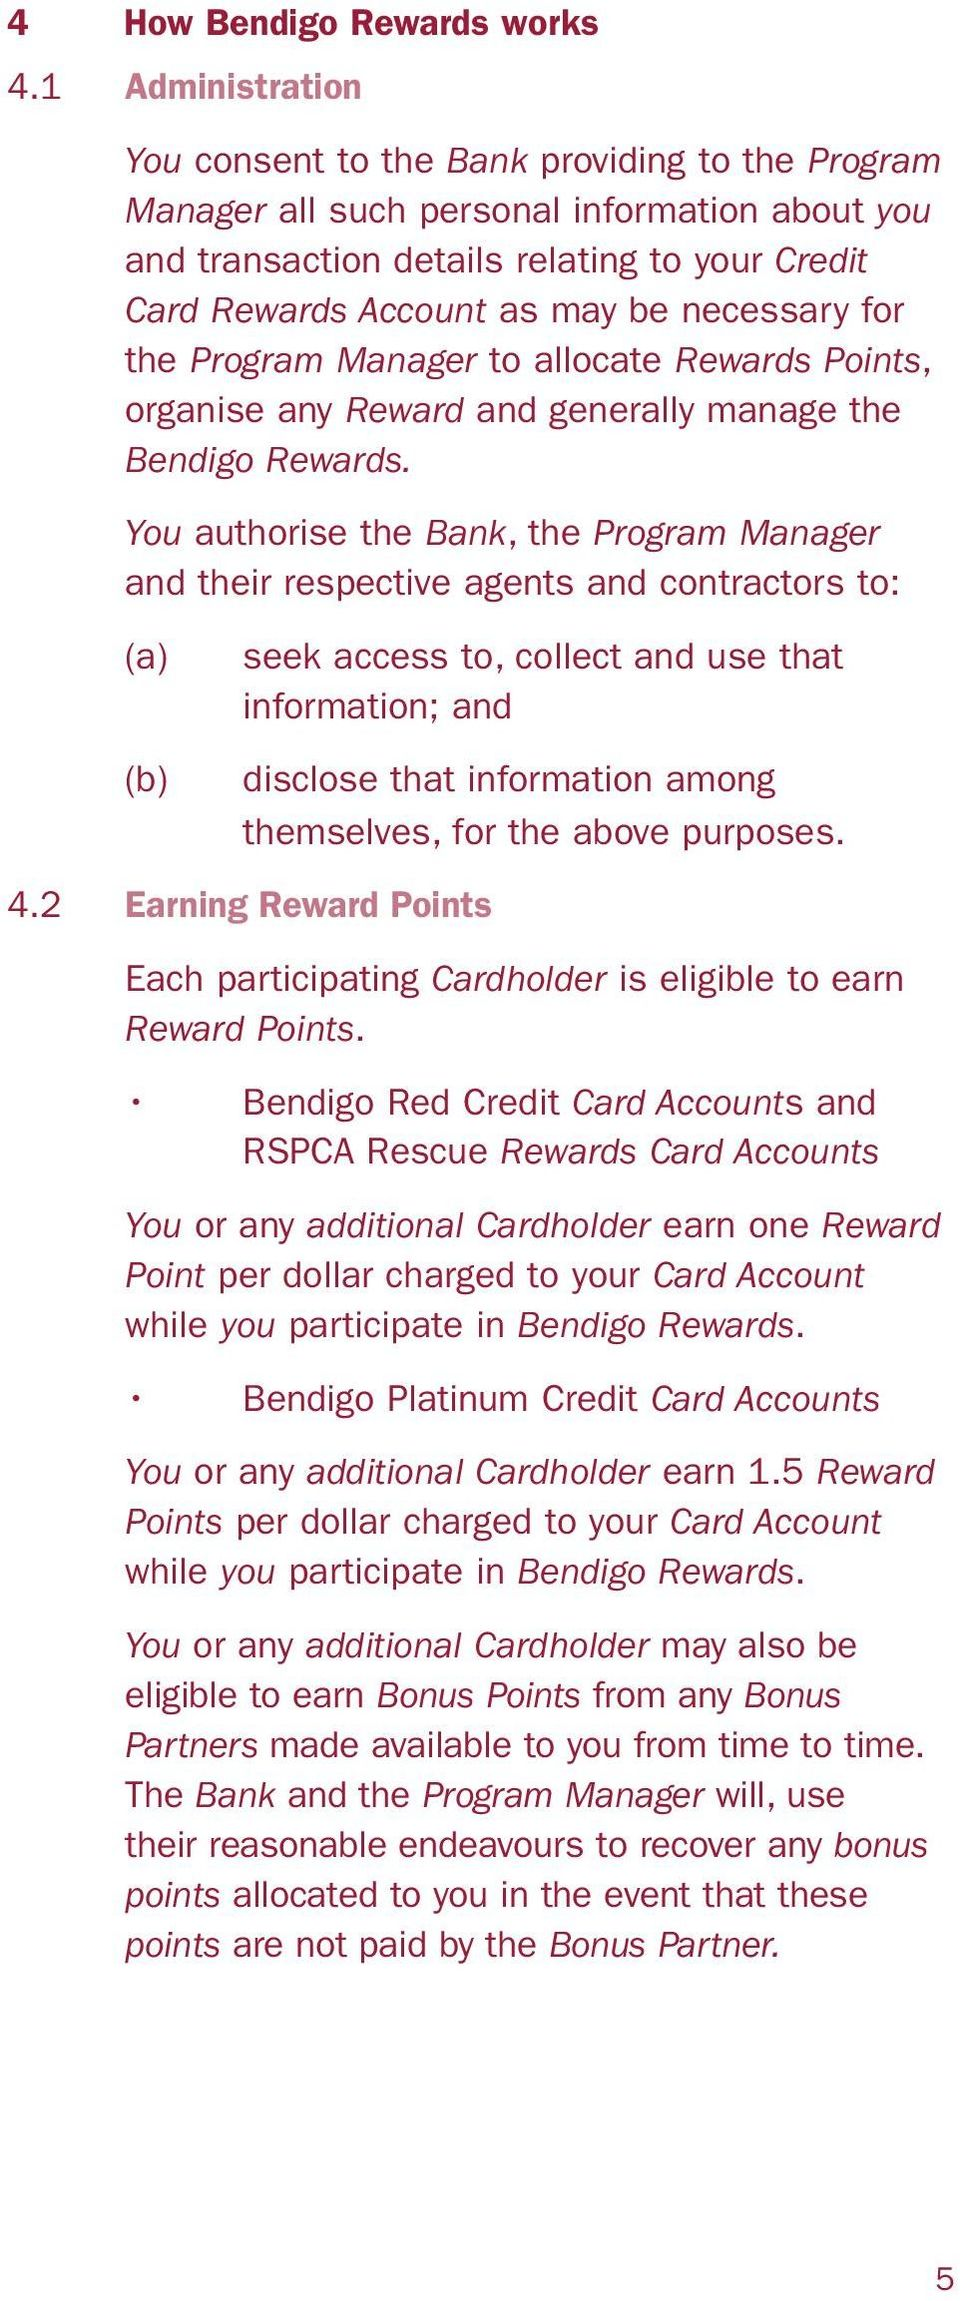 necessary for the Program Manager to allocate Rewards Points, organise any Reward and generally manage the Bendigo Rewards.